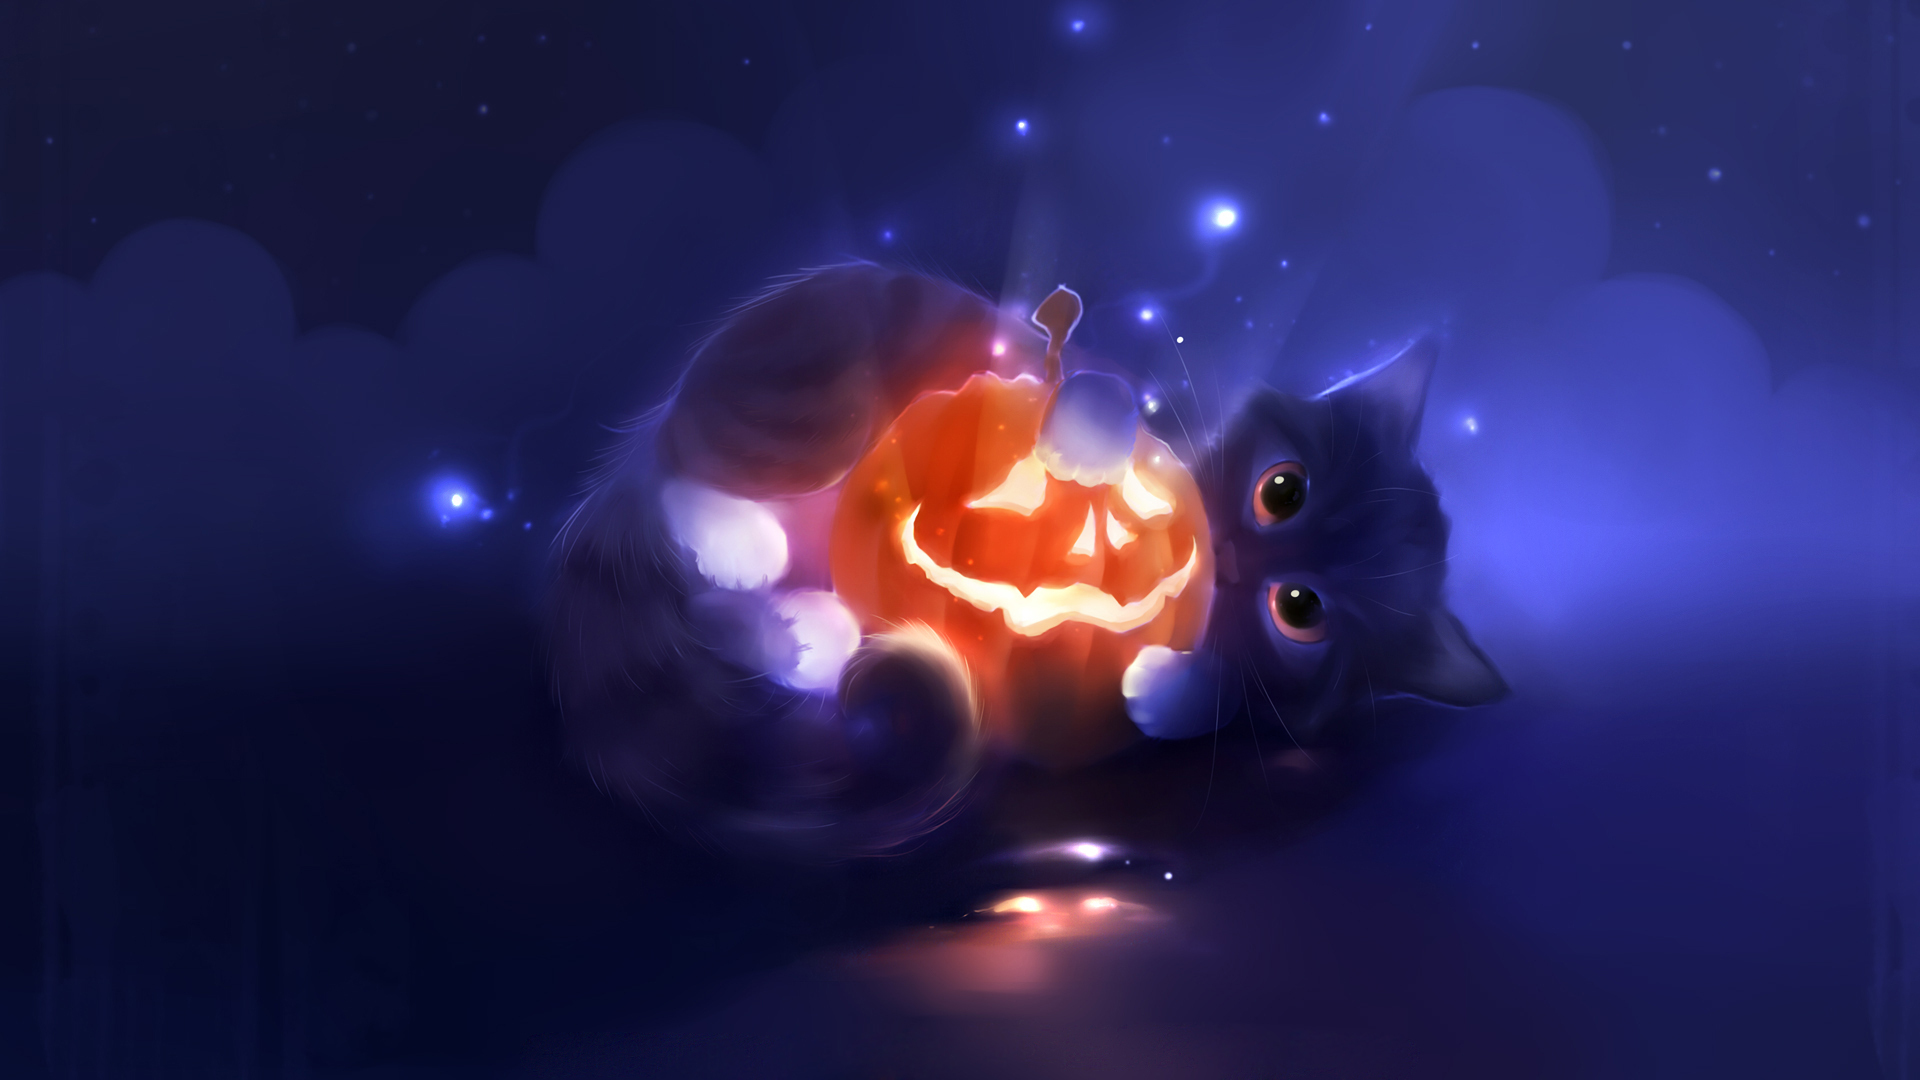 Cute Cat Halloween Backgrounds2